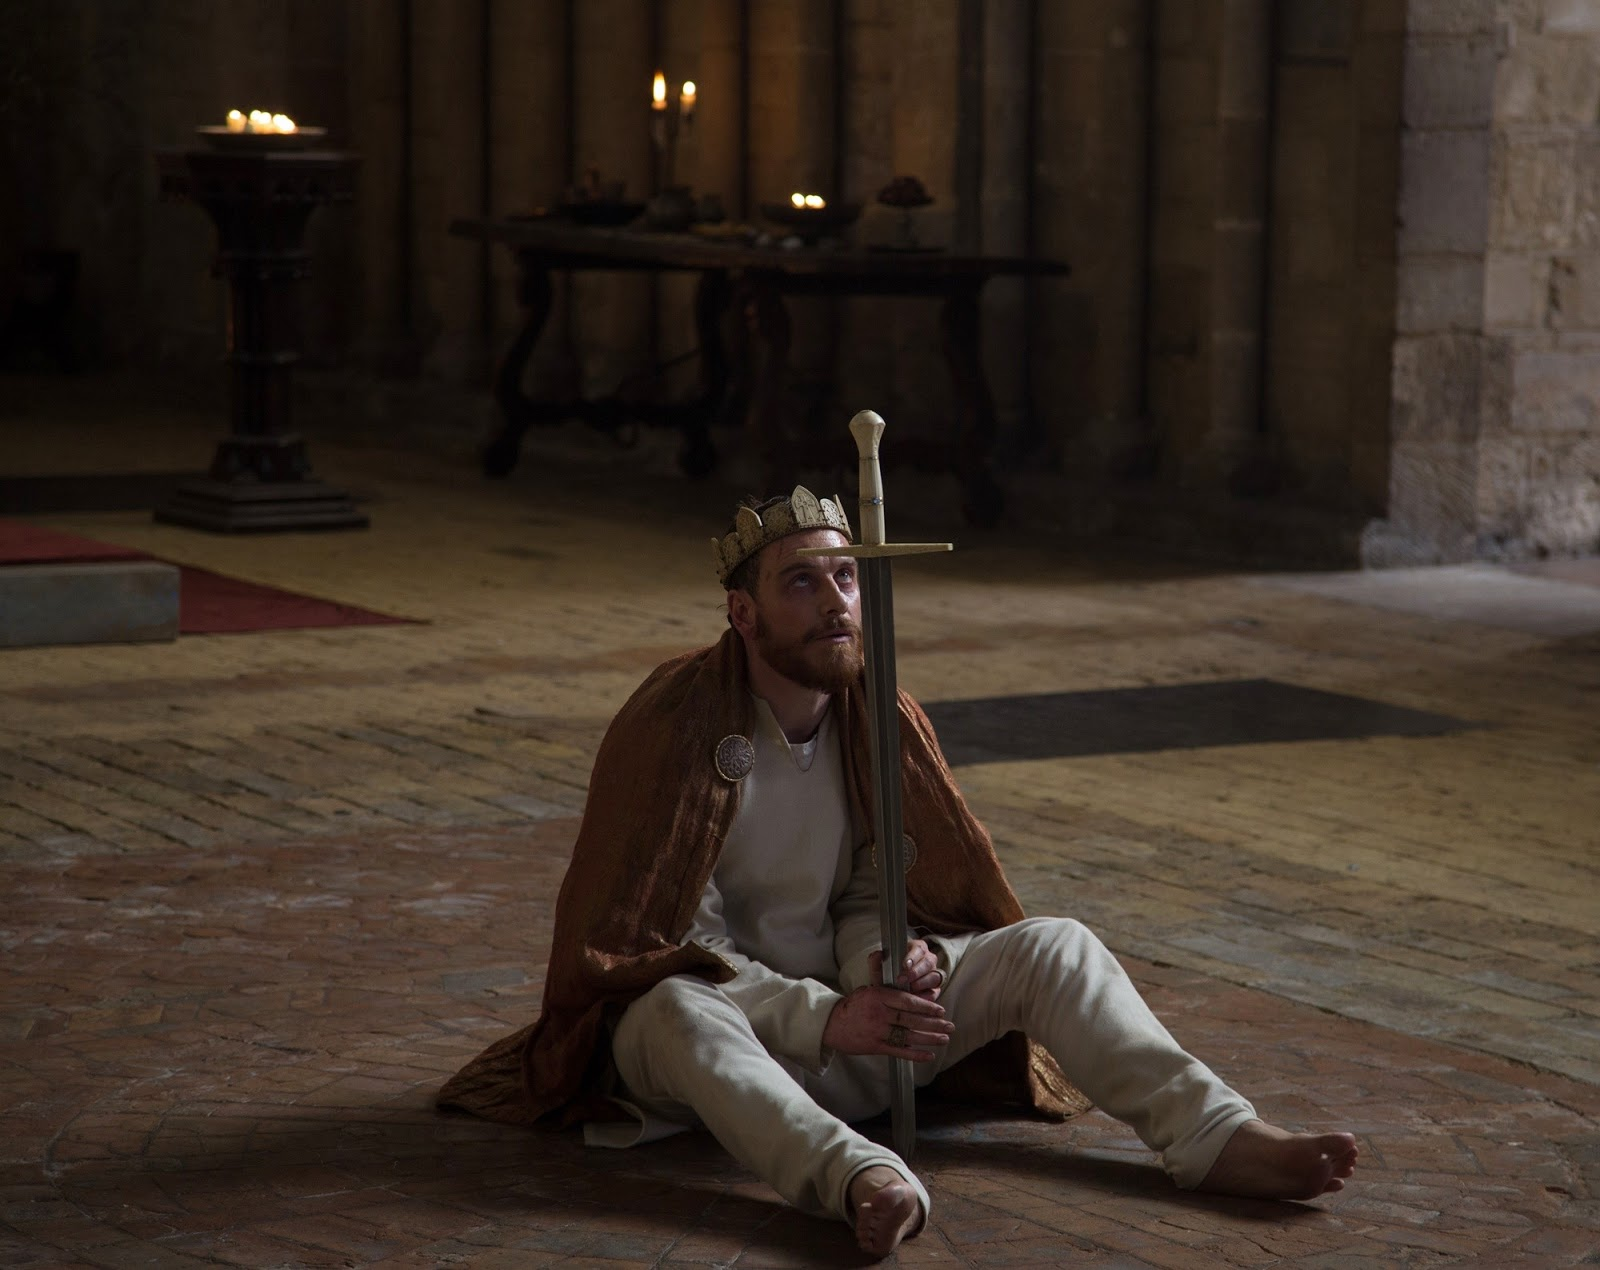 a review of the film macbeth Fassbender has all the makings of a terrific macbeth - the intensity, the towering  melancholy, the warrior attitude and physique - and he duly delivers, as does.